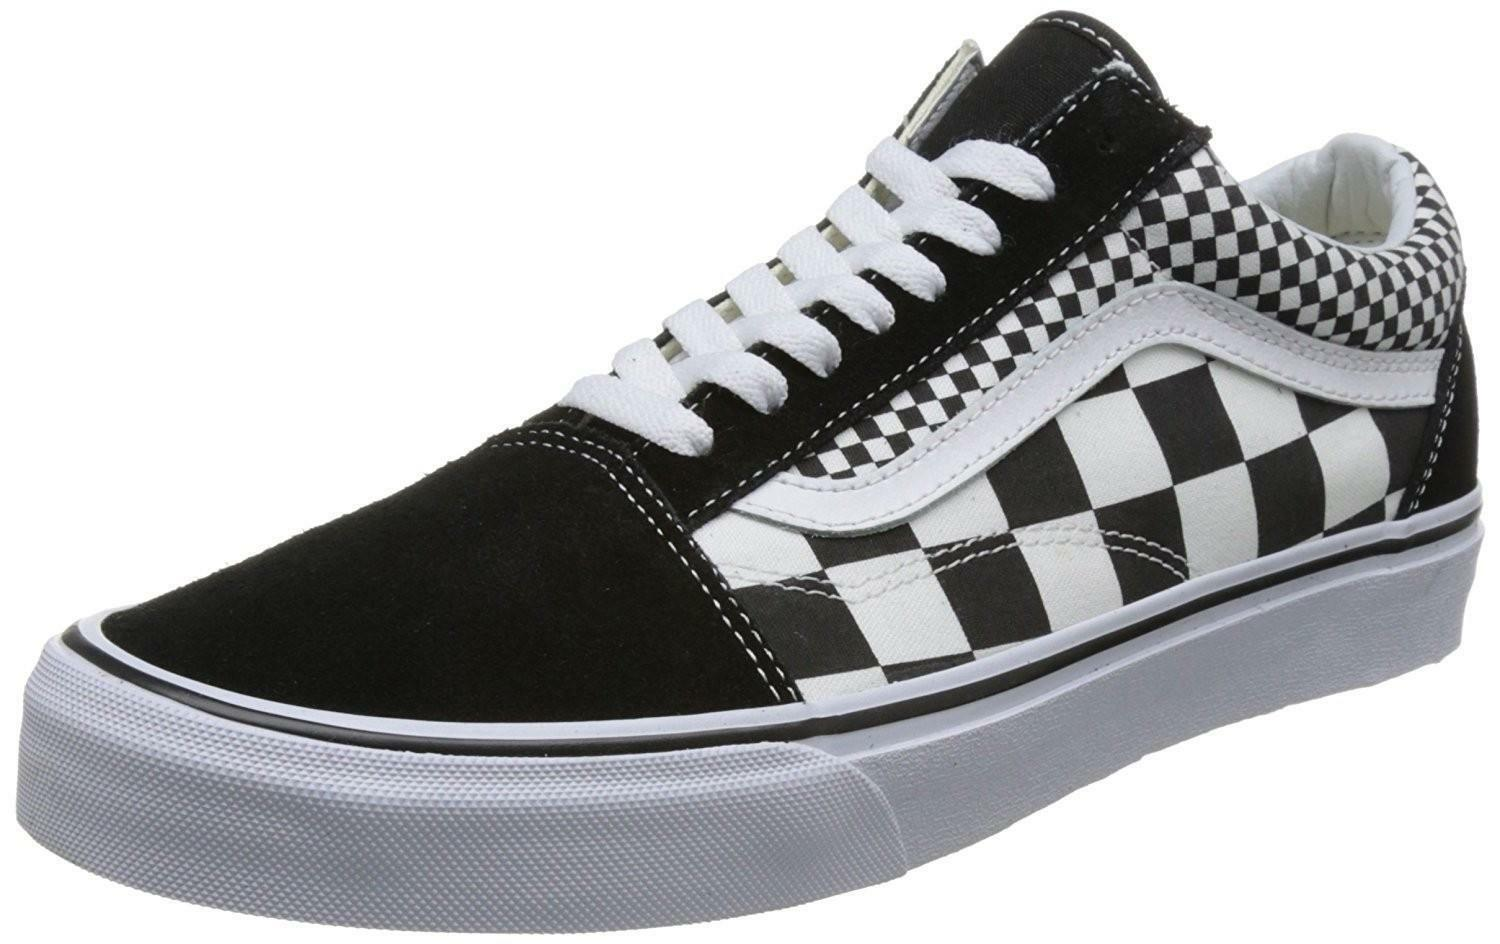 scarpe mix checker old skool vans scarpe mix checker old skool